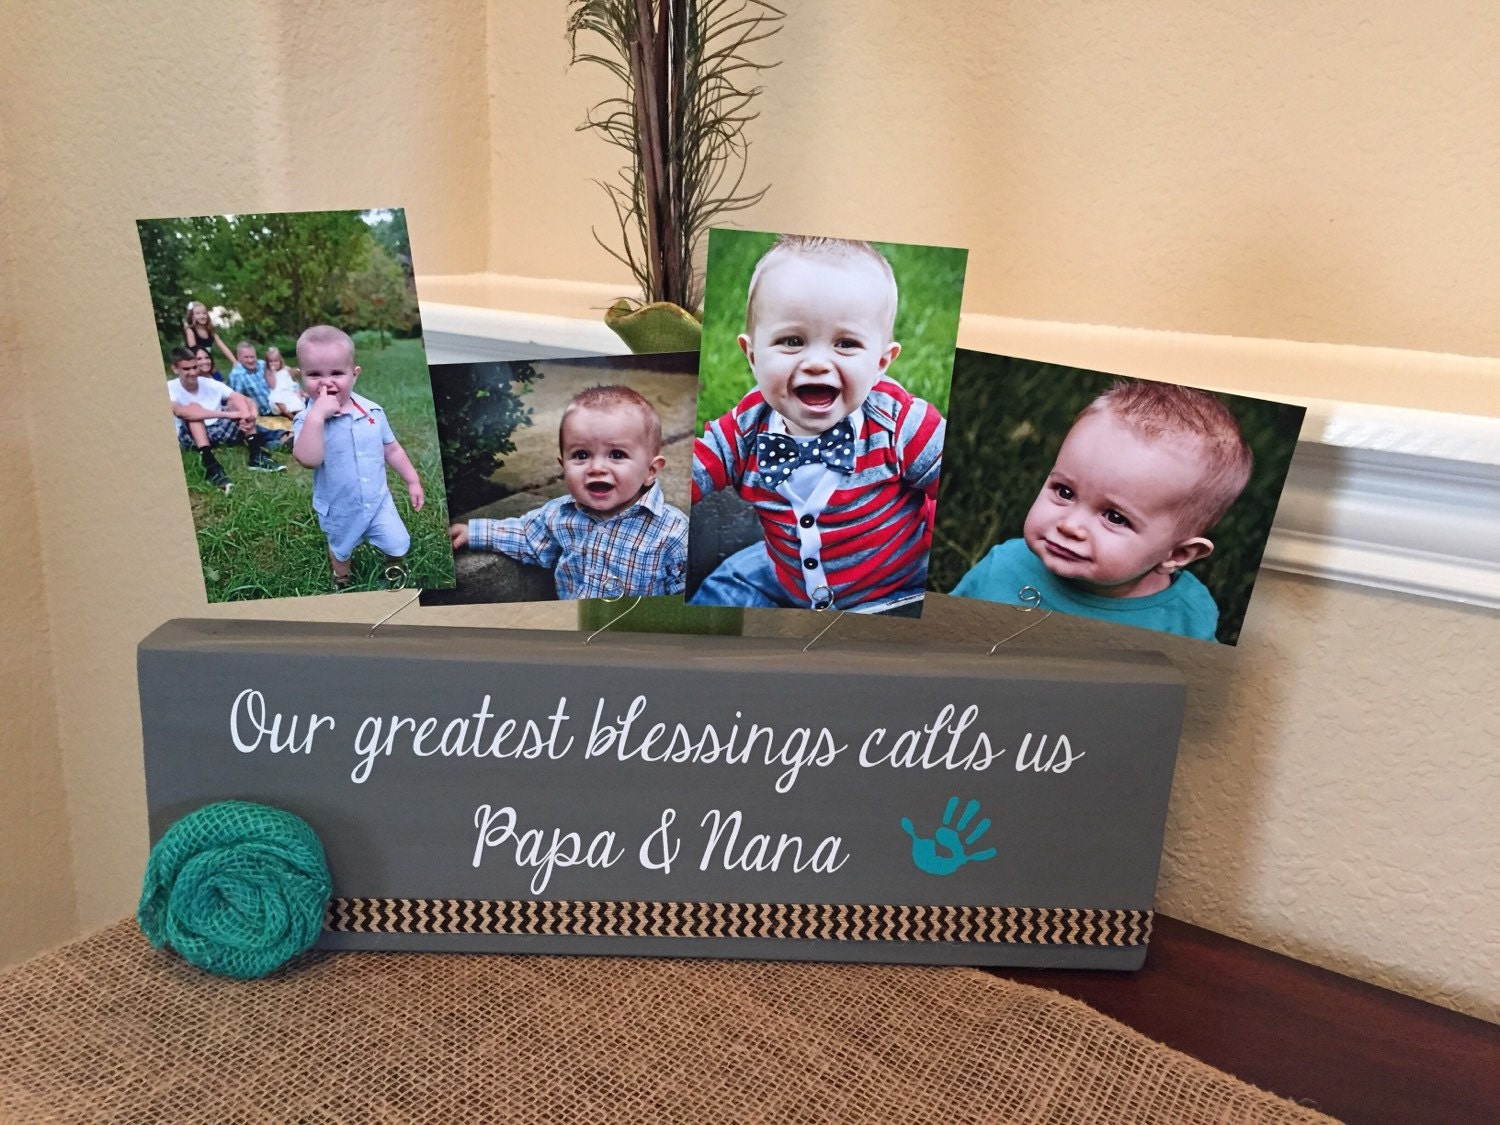 Gift for godparents personalized picture frame gift for baptism 3595 jeuxipadfo Image collections